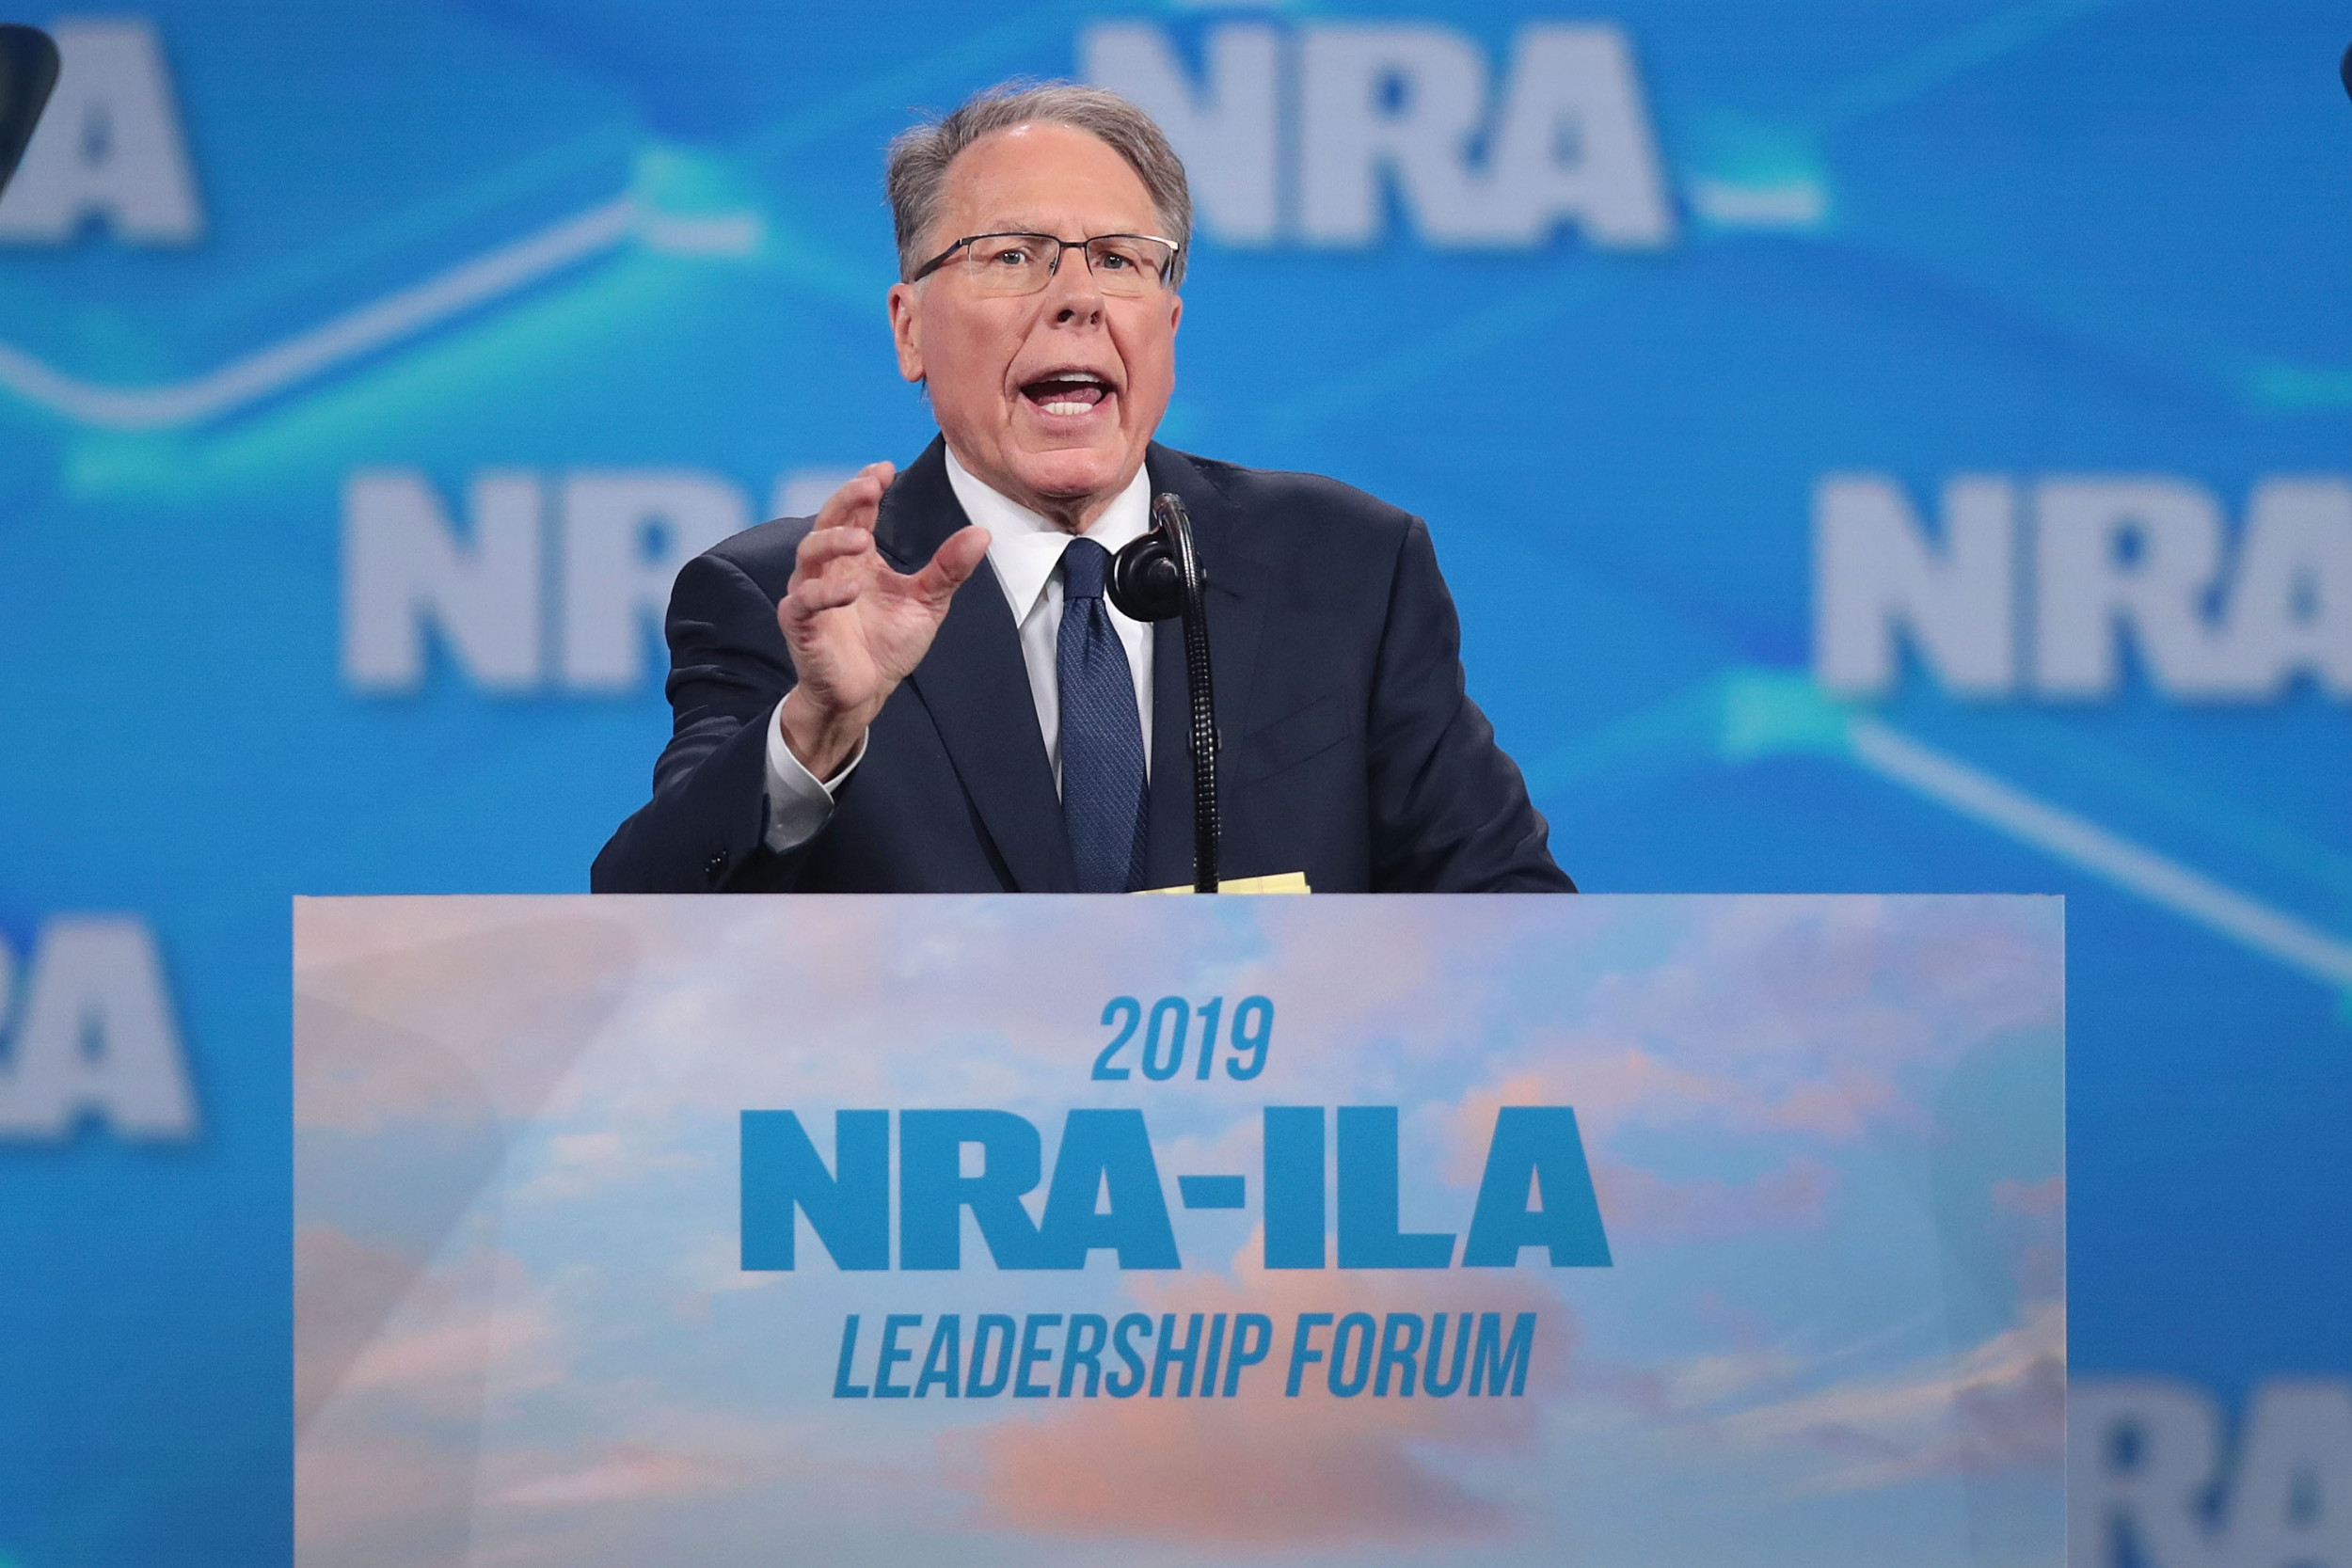 Breaking: The National Rifle Association is laying off staff, cutting salaries and reducing hours amid COVID-19 outbreak